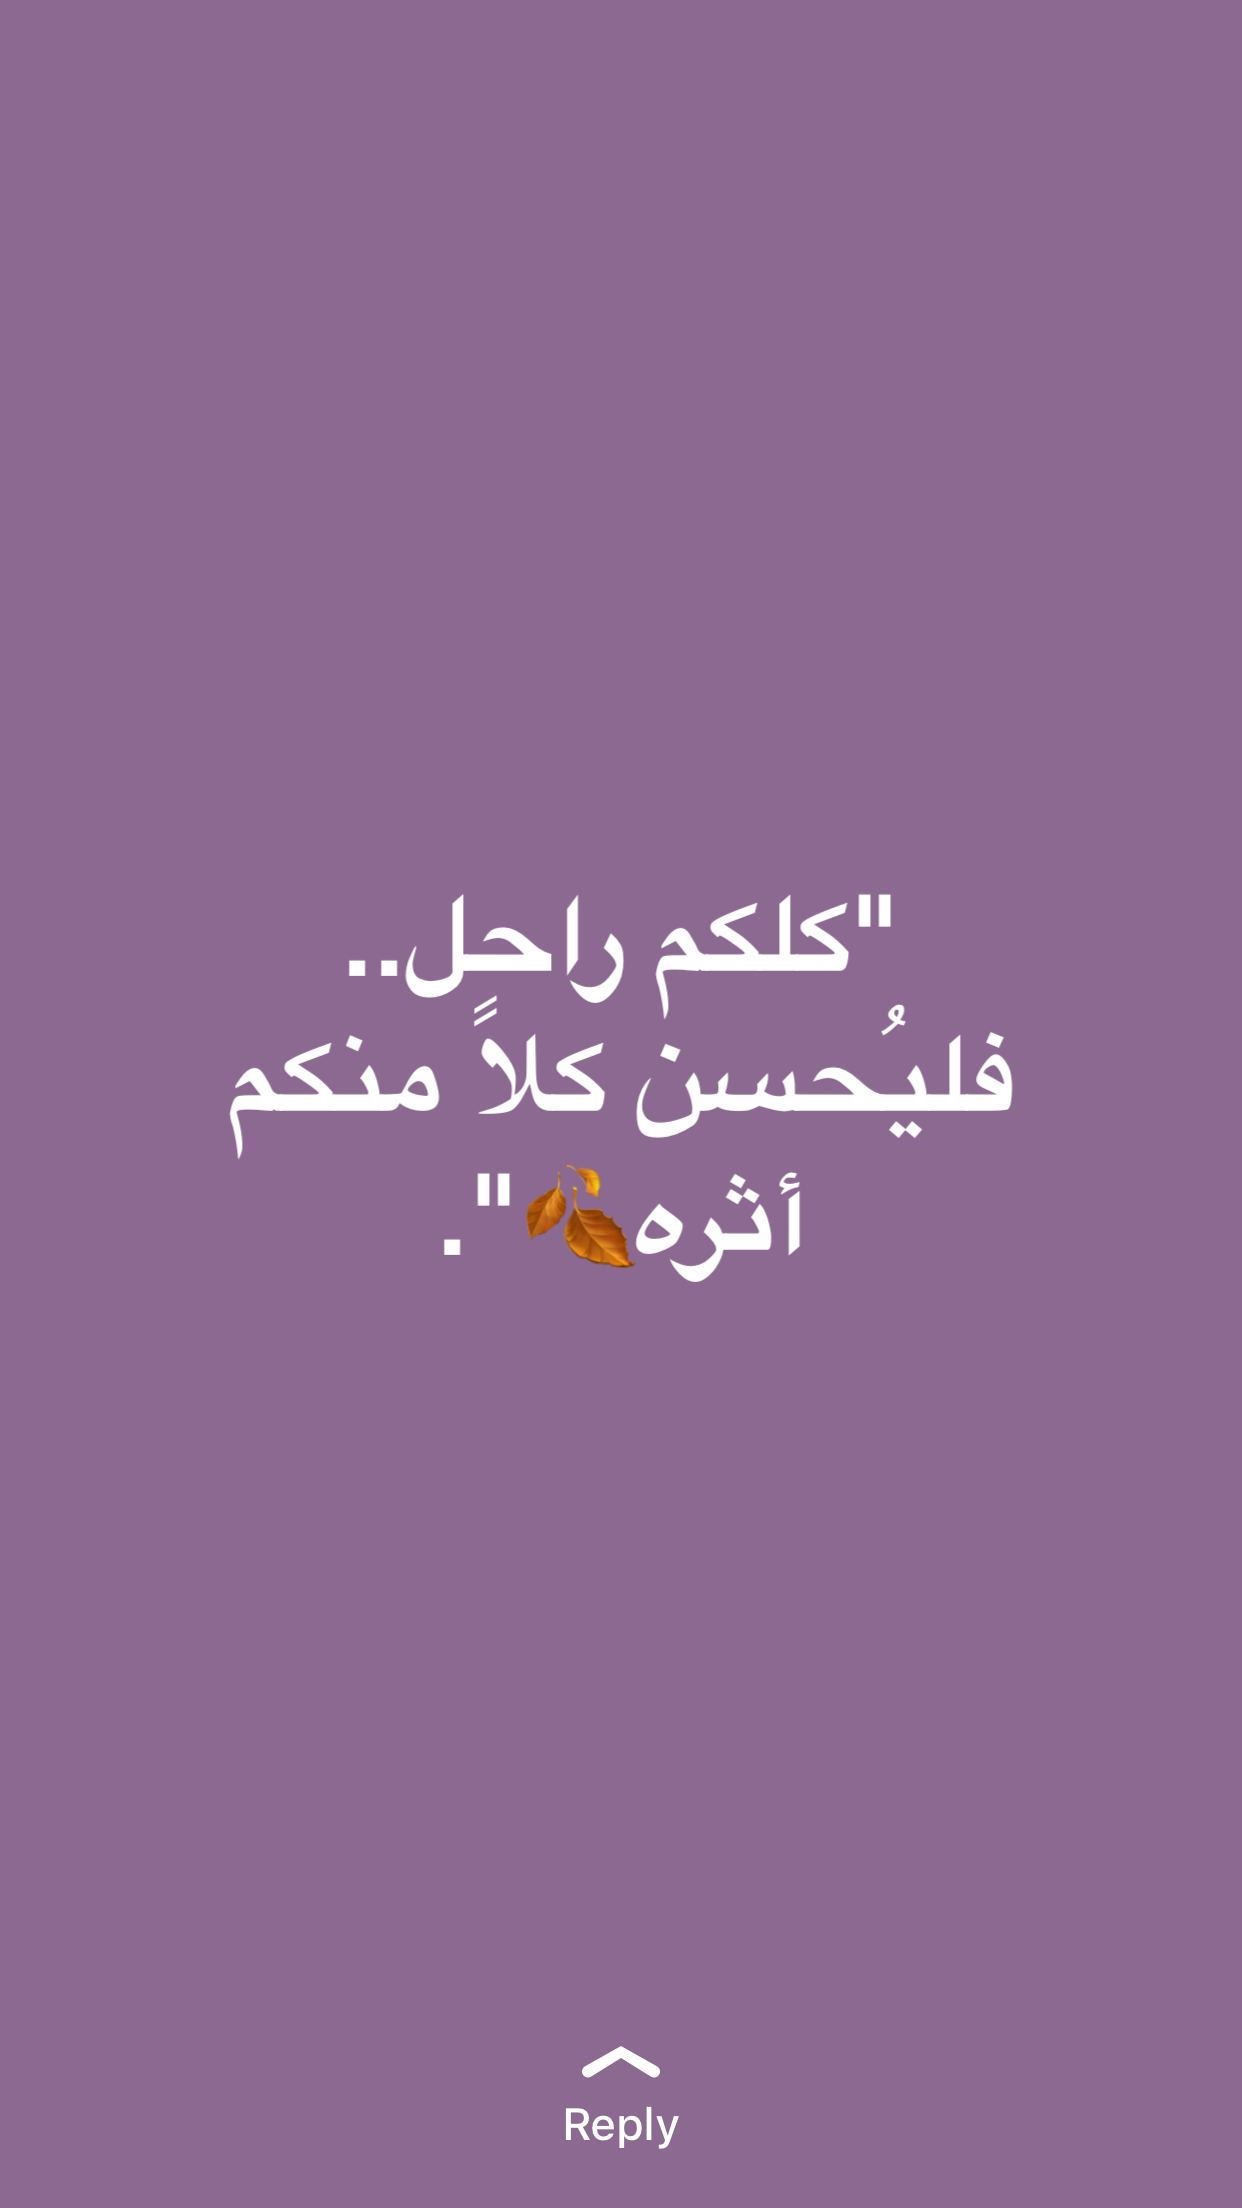 Pin by Sara hilal94 on arabic quotes | Arabic quotes, Quotes